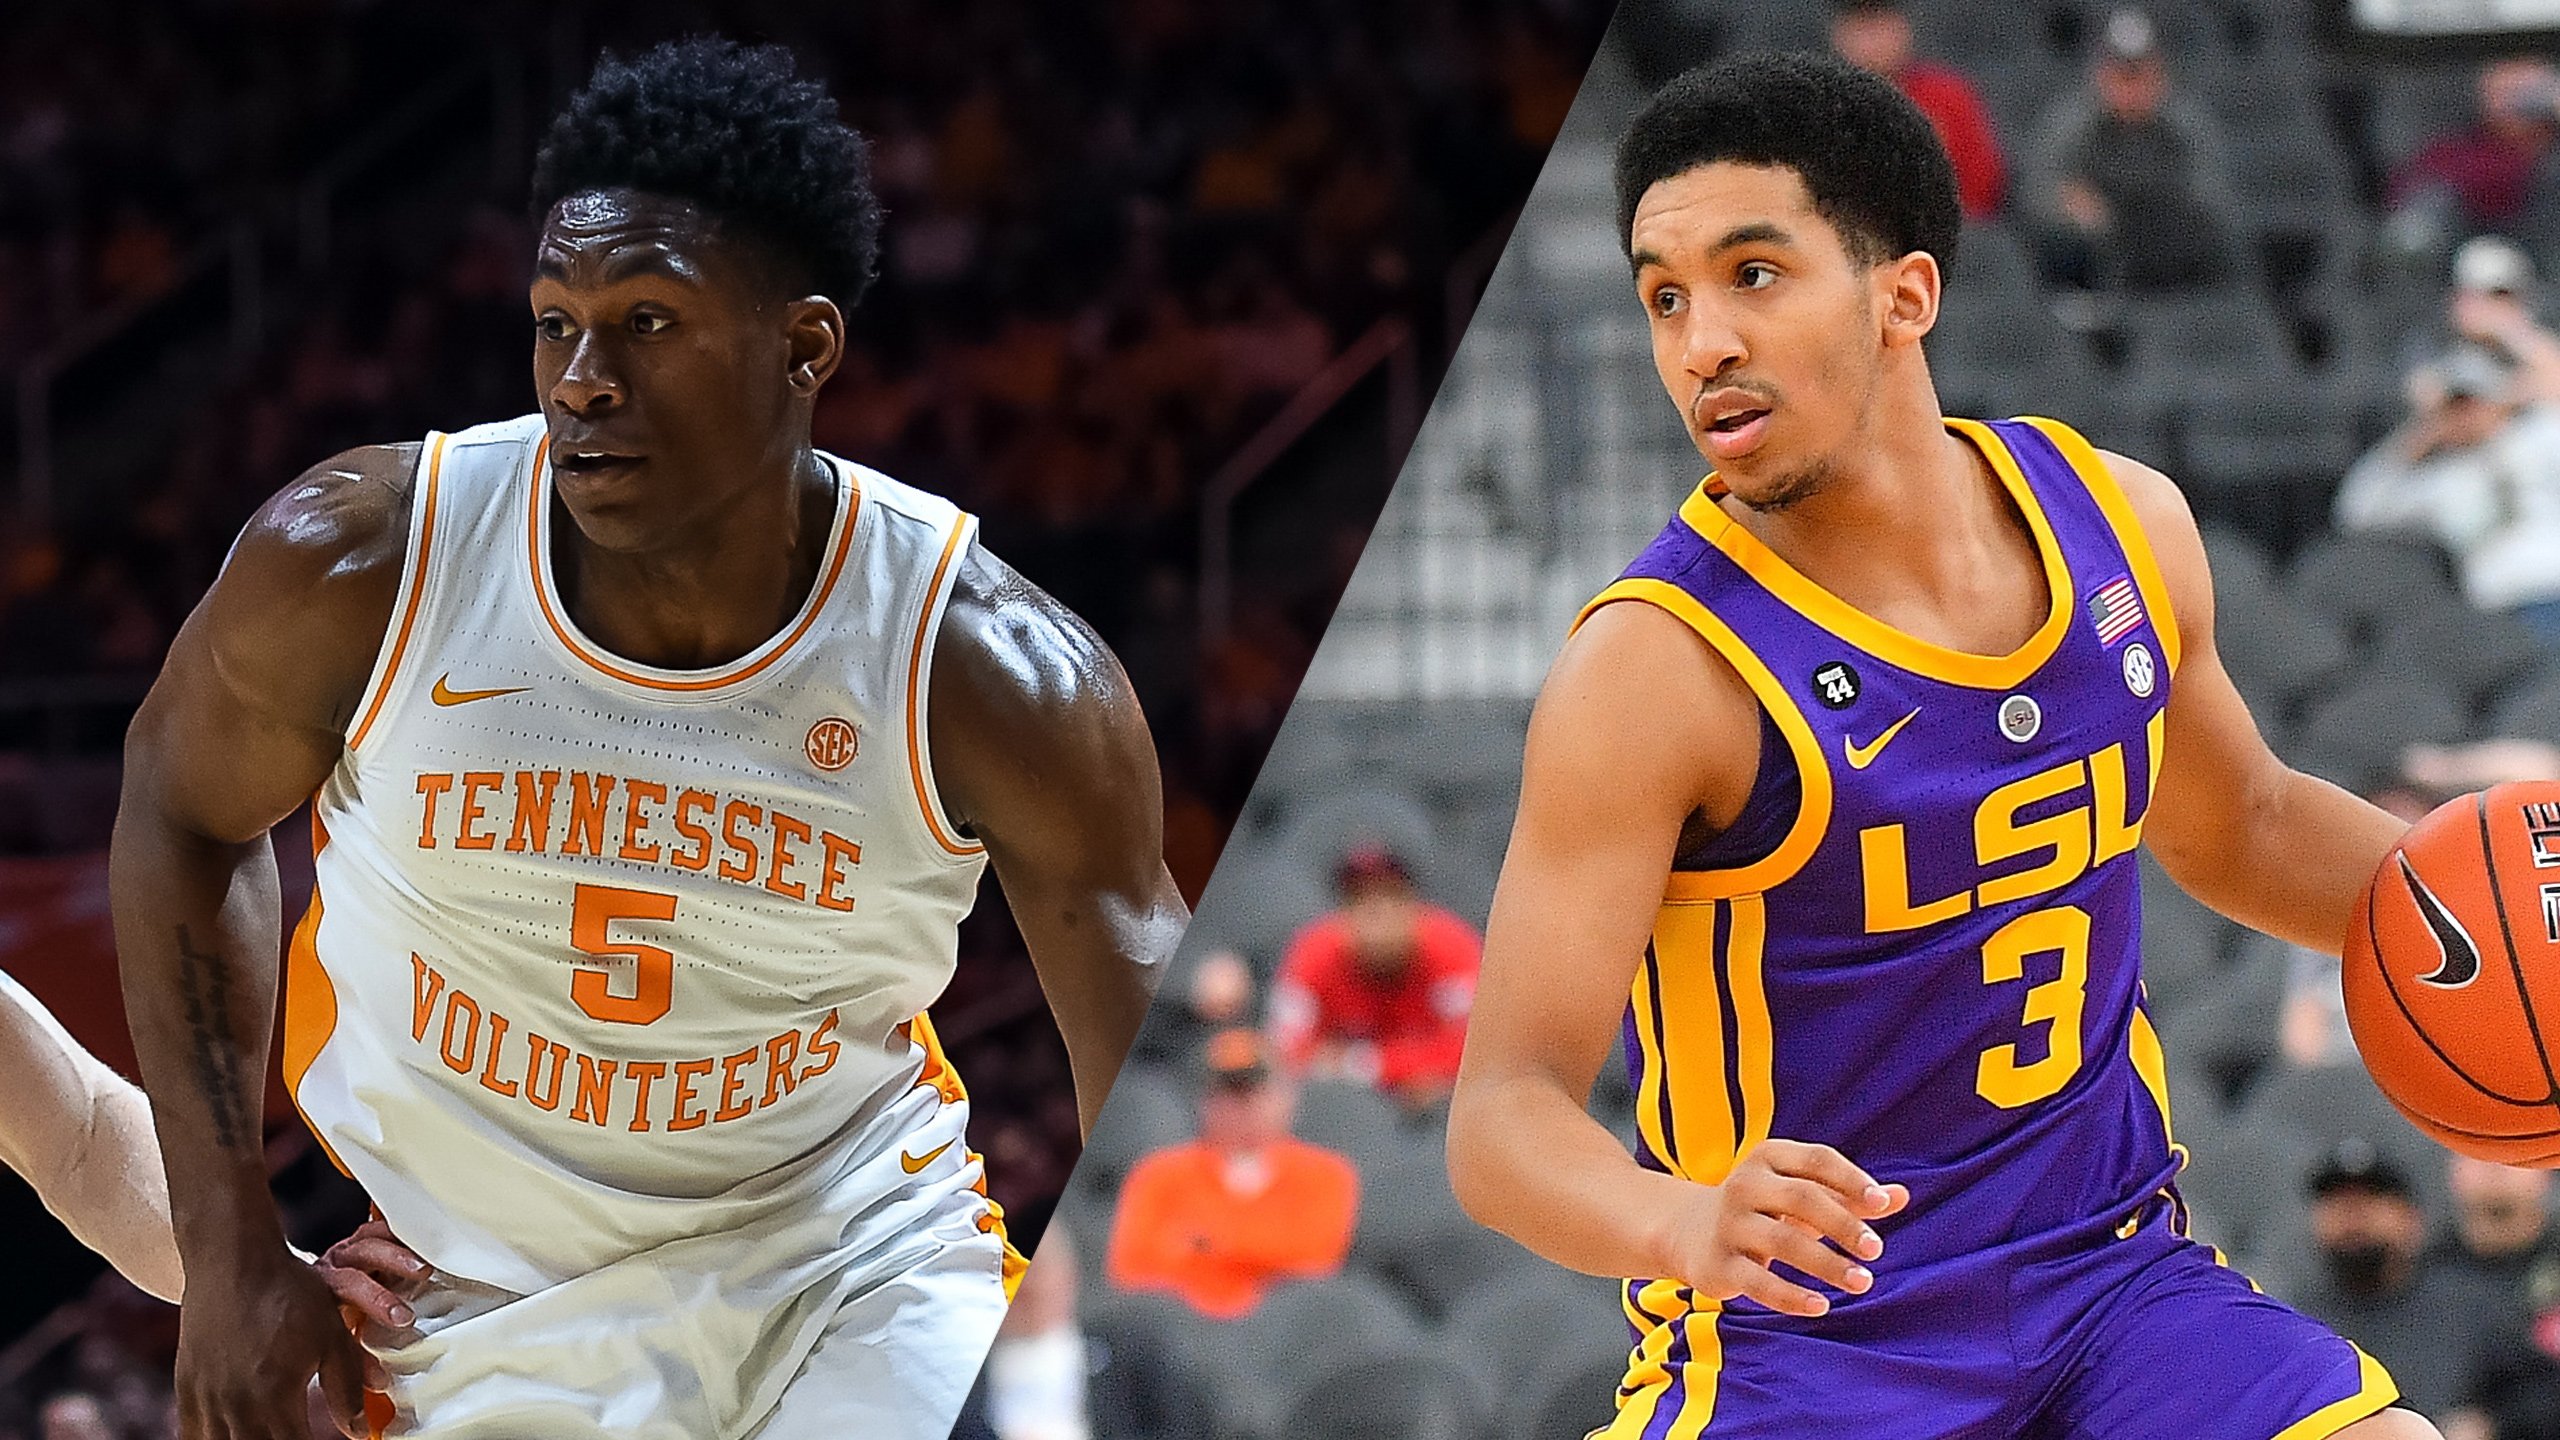 #5 Tennessee vs. #13 LSU (M Basketball) (re-air)